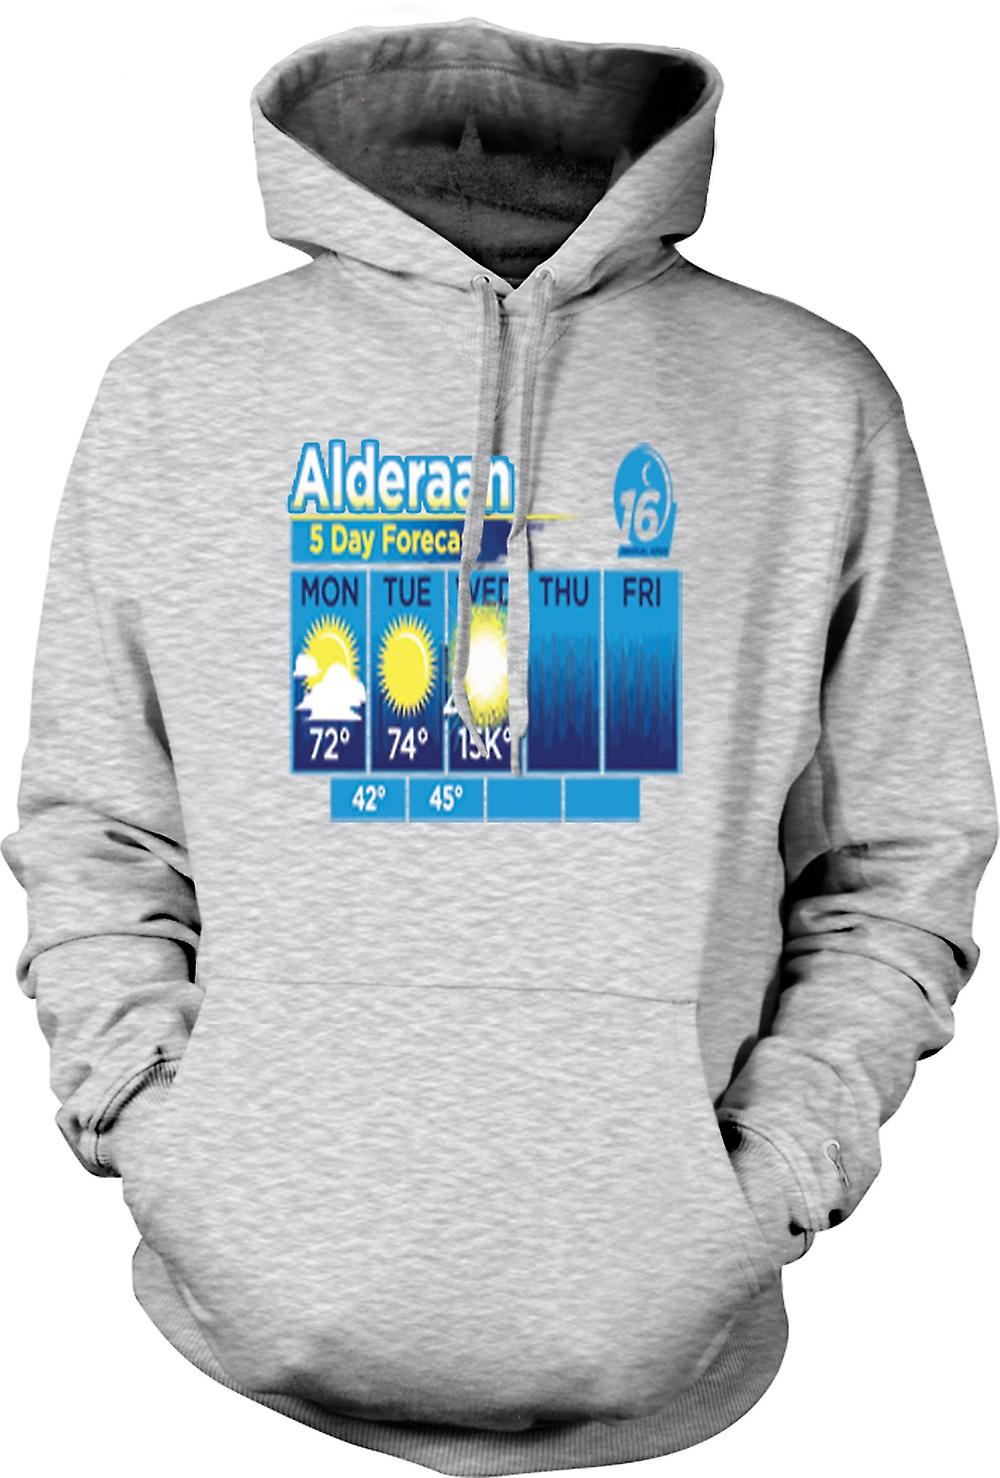 Mens Hoodie - Alderaan 5 Day Weather Forcast - Star Wars